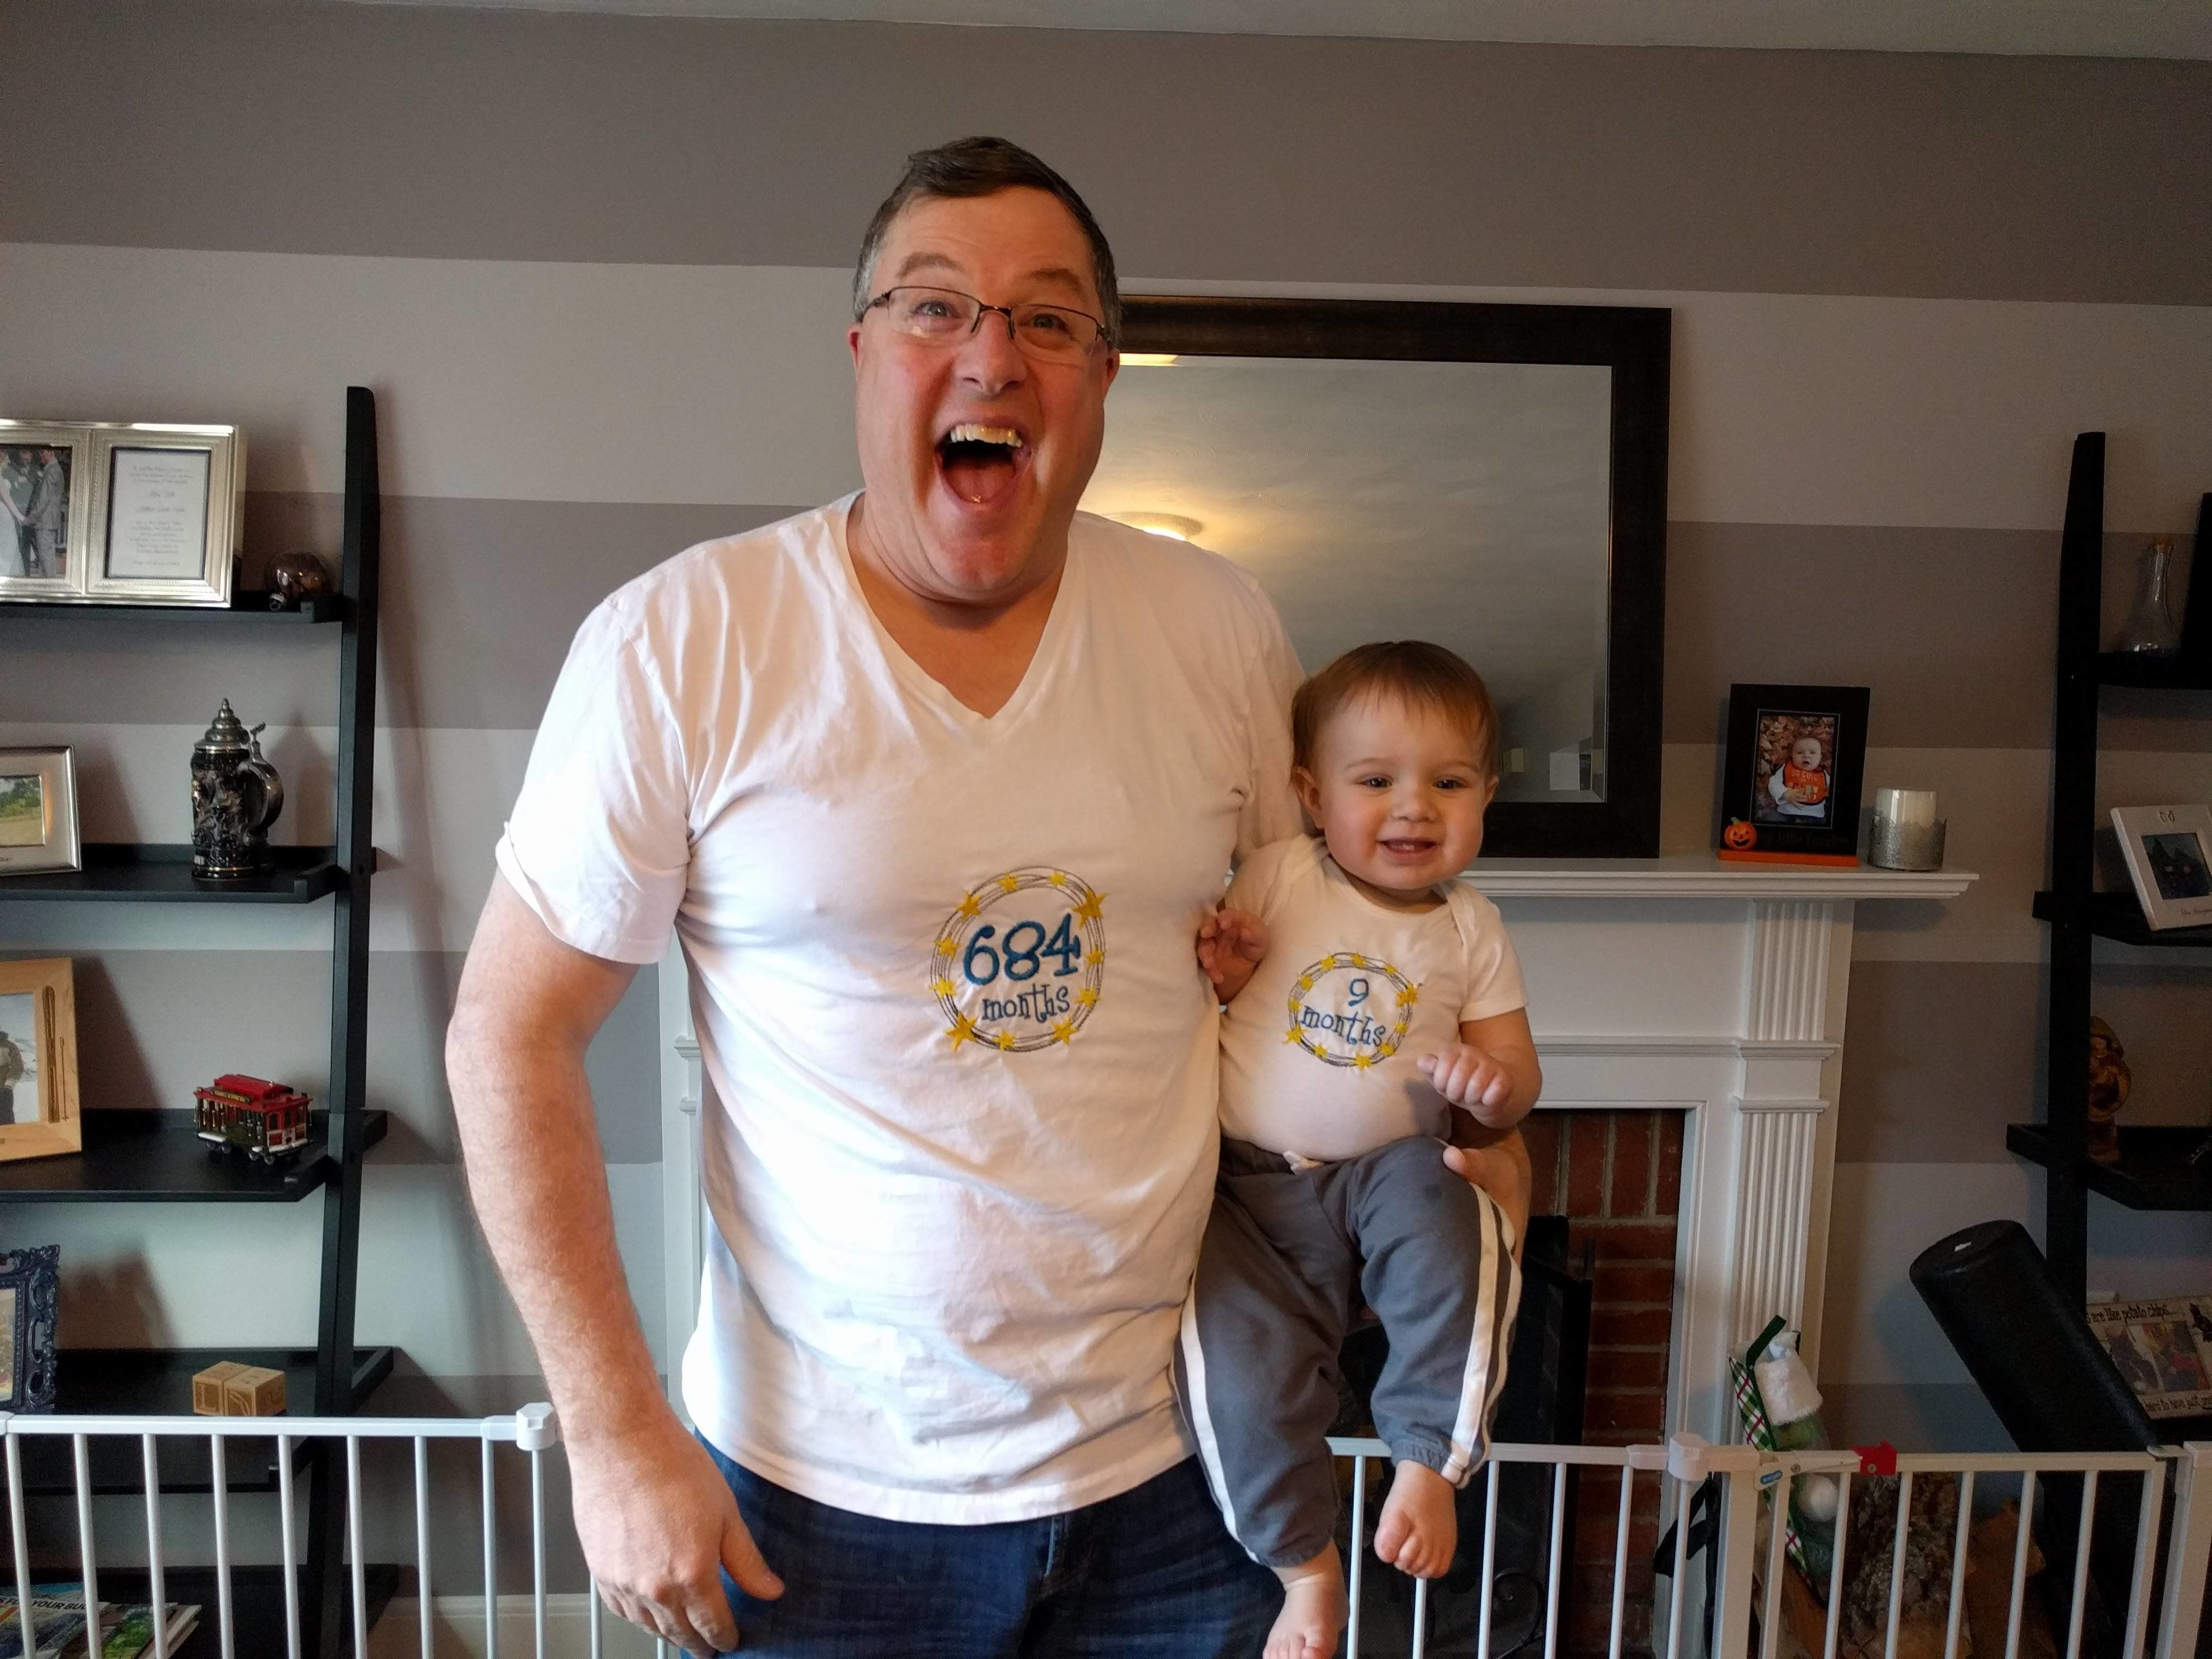 Bob Graham wanted a shirt to match his grandson's monthly growth outfits.